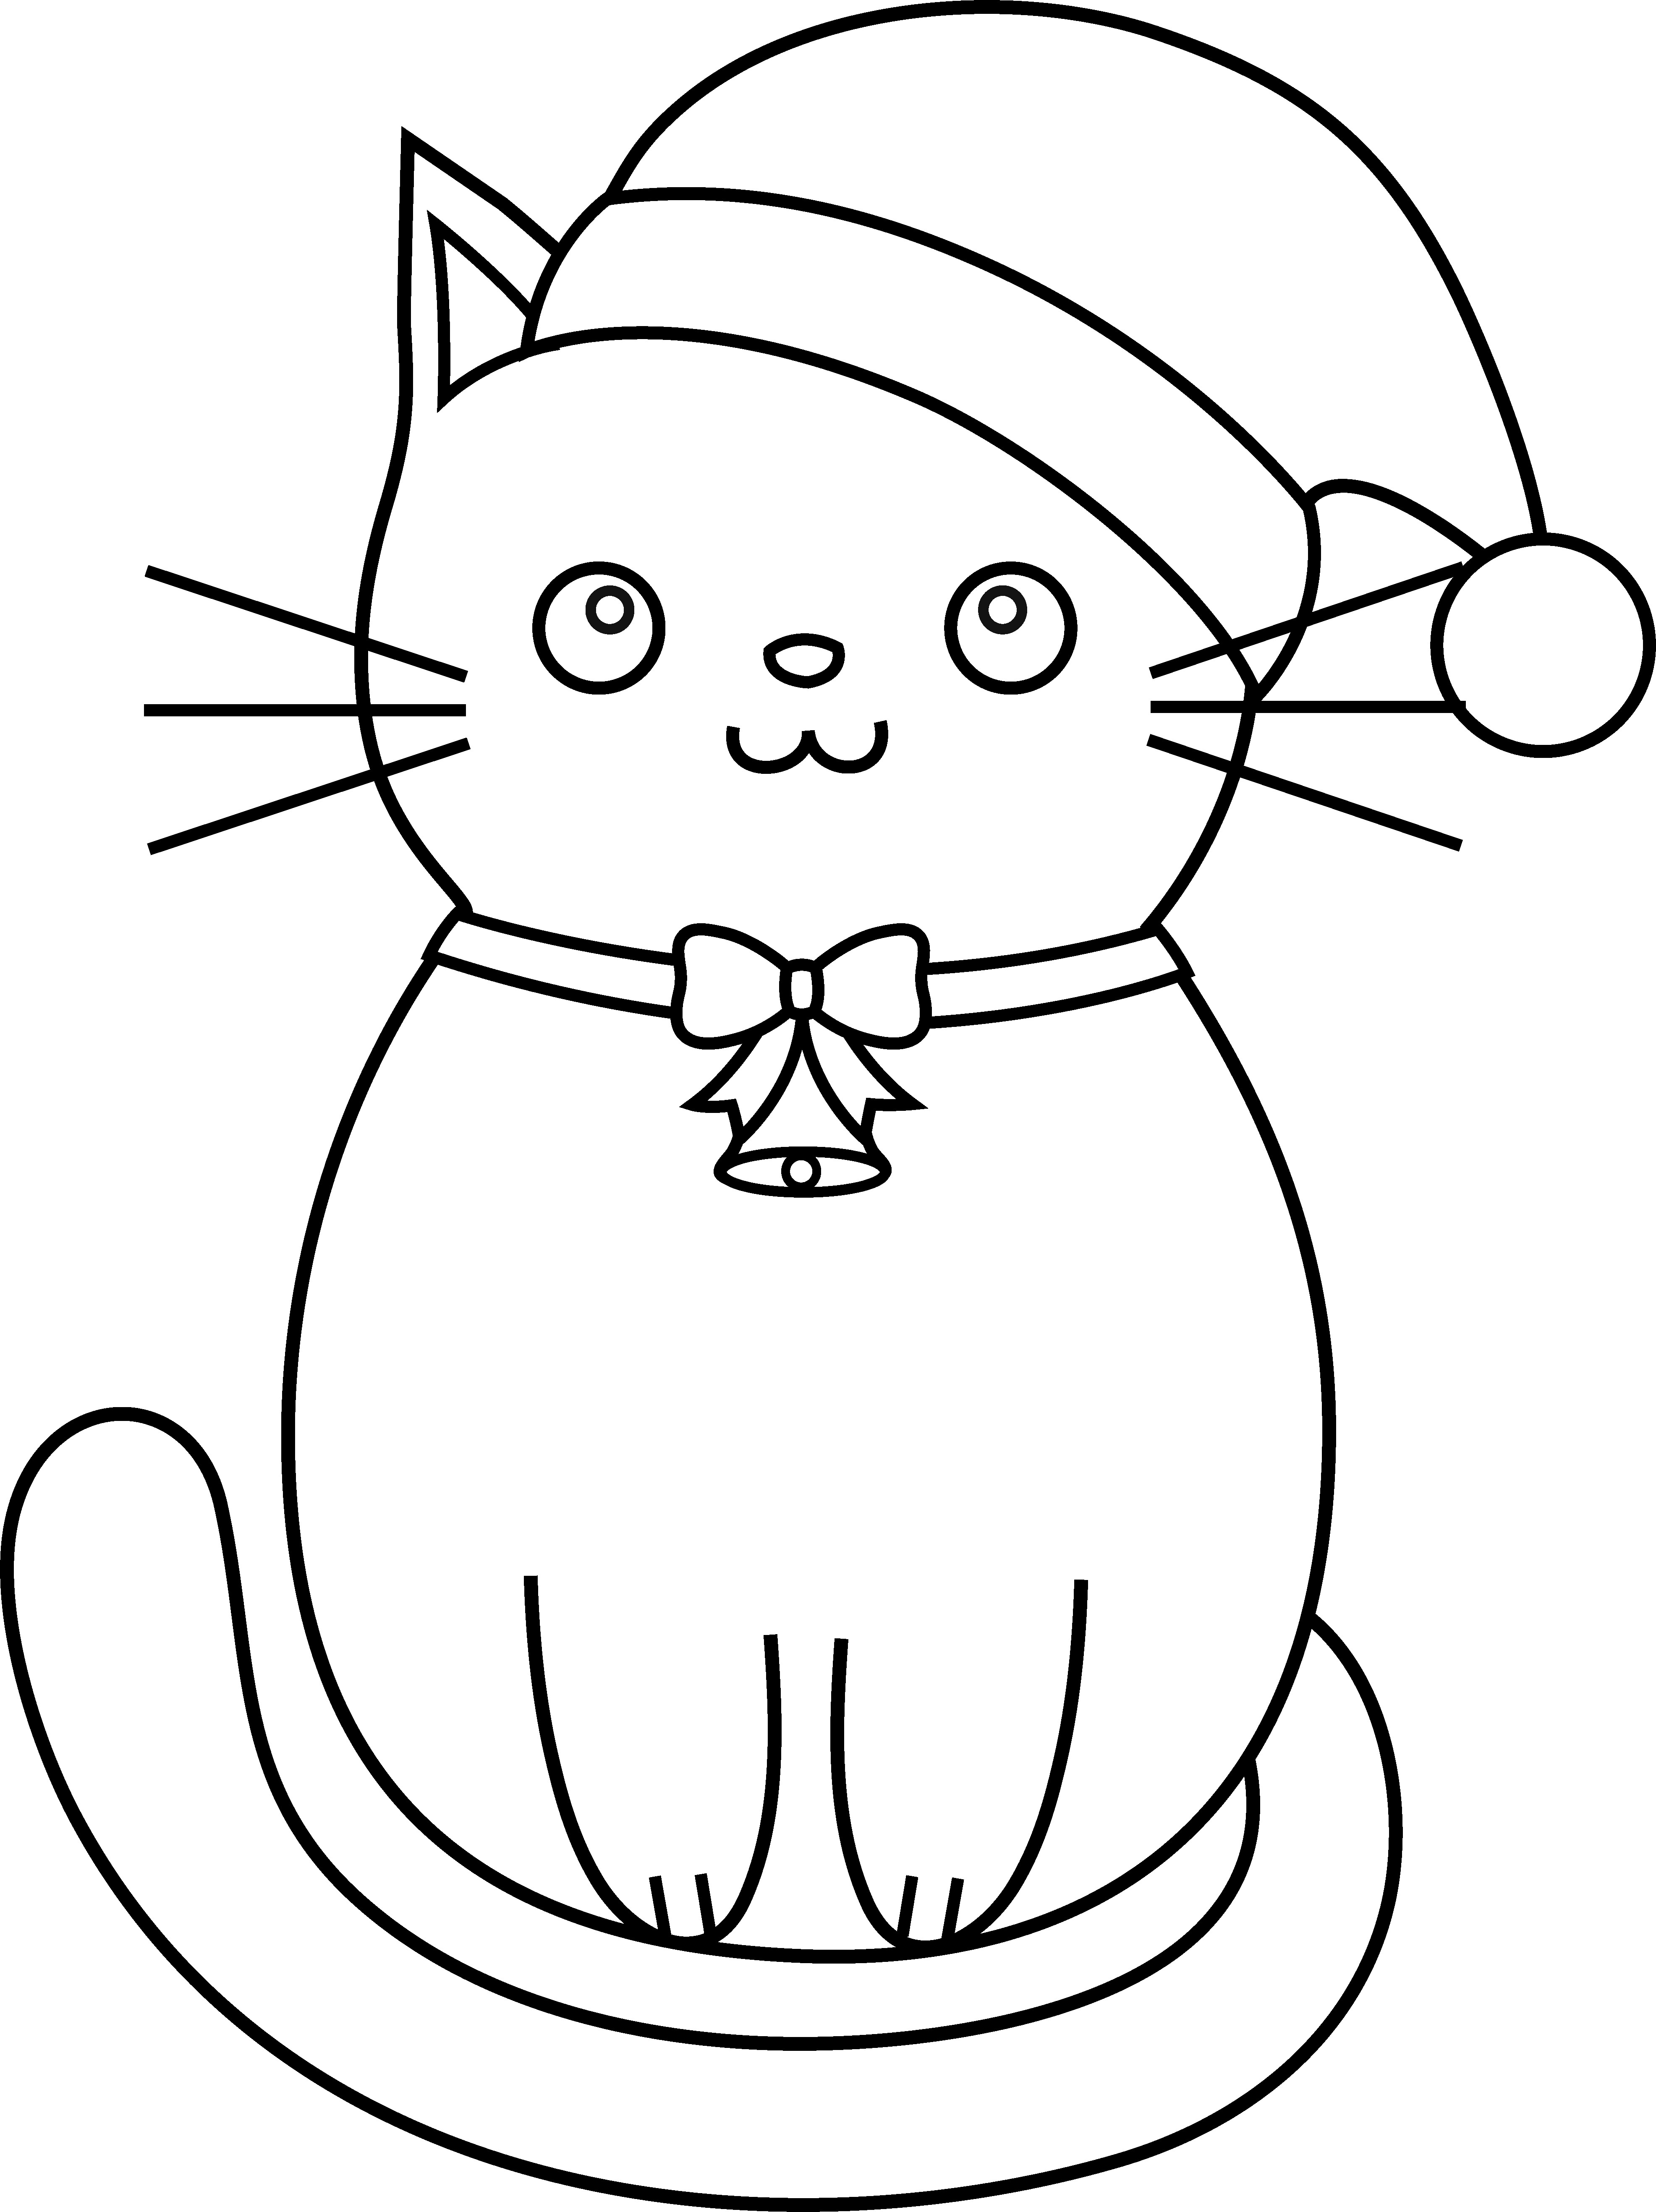 3945x5271 Coloring Pages Of Cats Printable Fresh Coloring Pages Cat Coloring